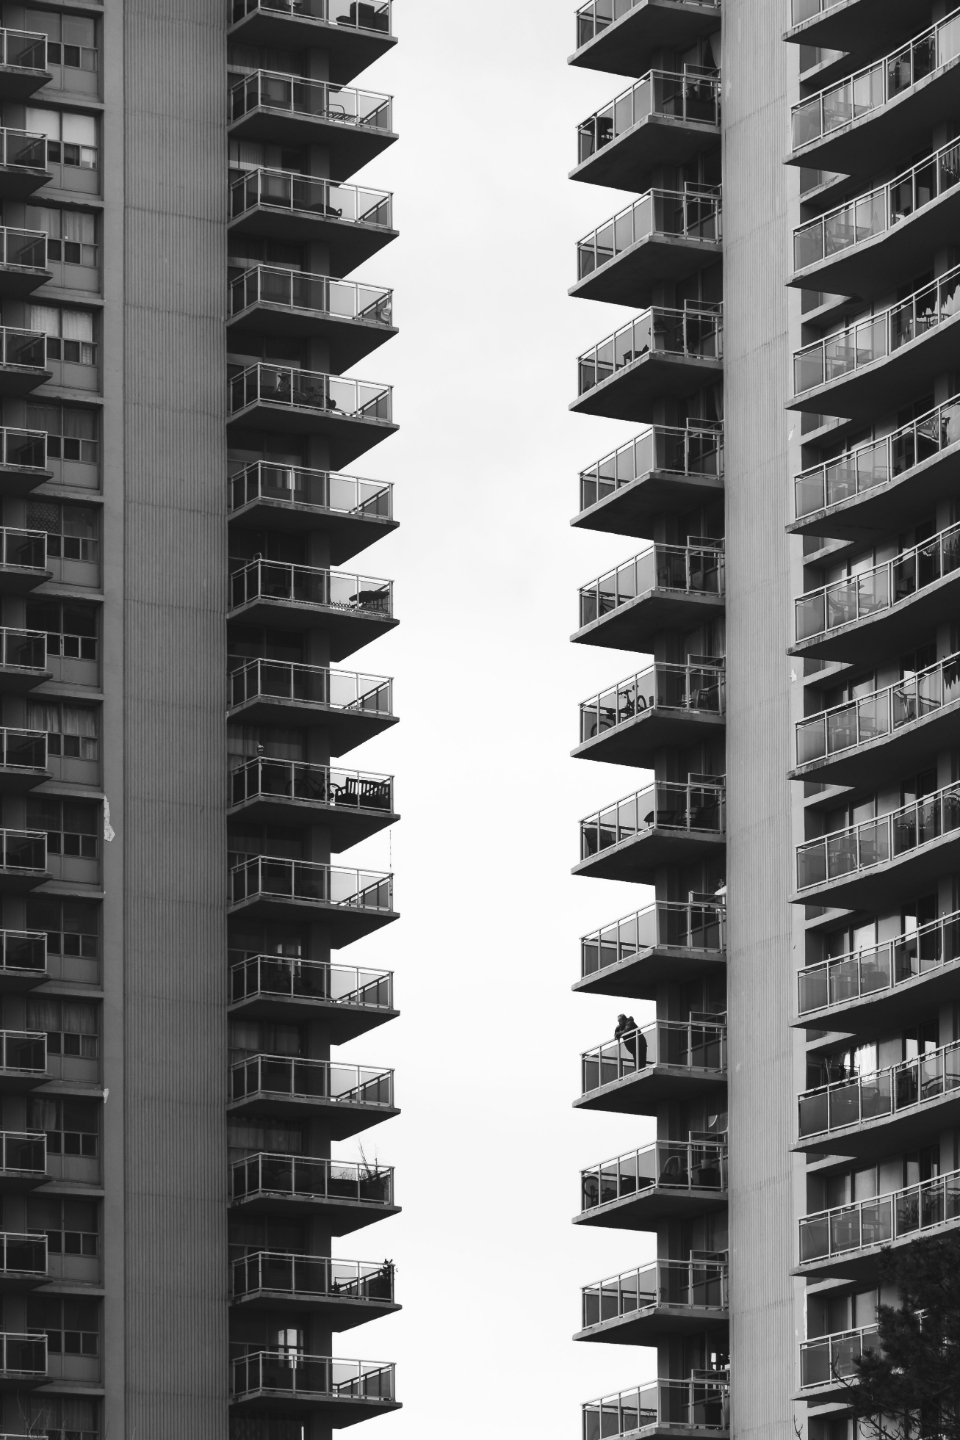 apartment abstract balcony terraces monochromatic view apartments living city tall buildings urban architecture modern structure windows